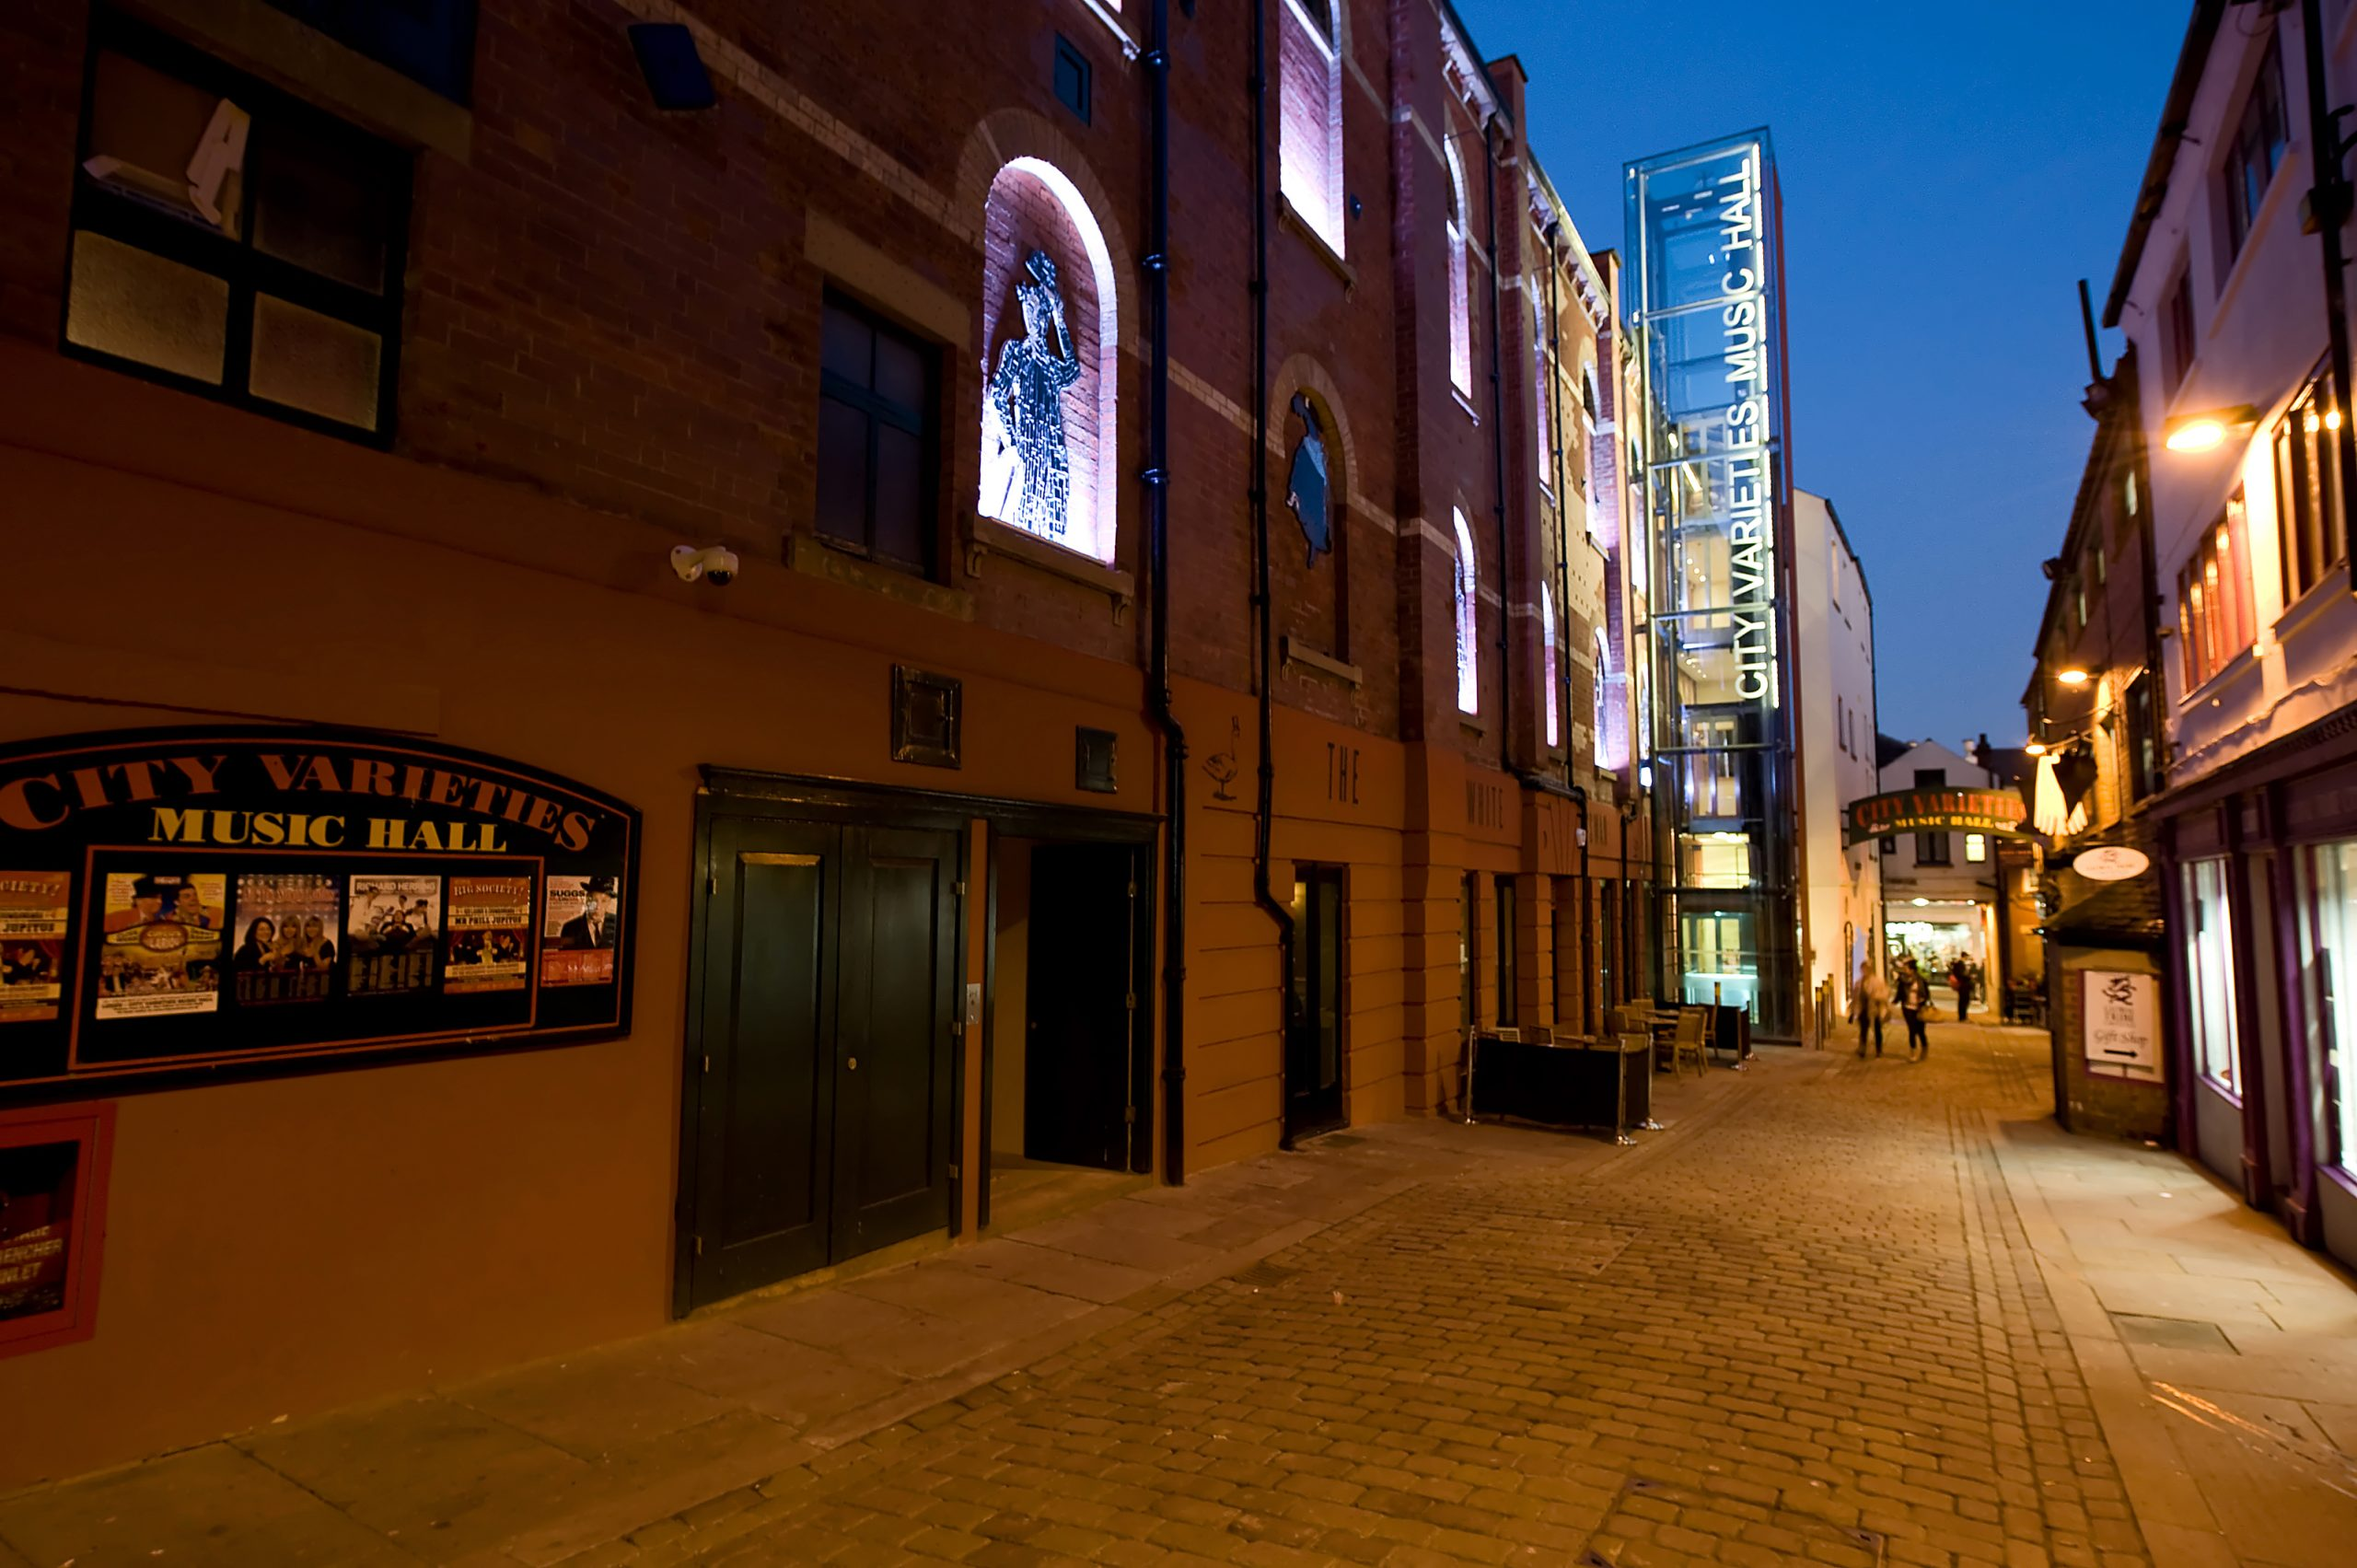 Swan Street (City Varieties) - Photographer Tony O'Connell